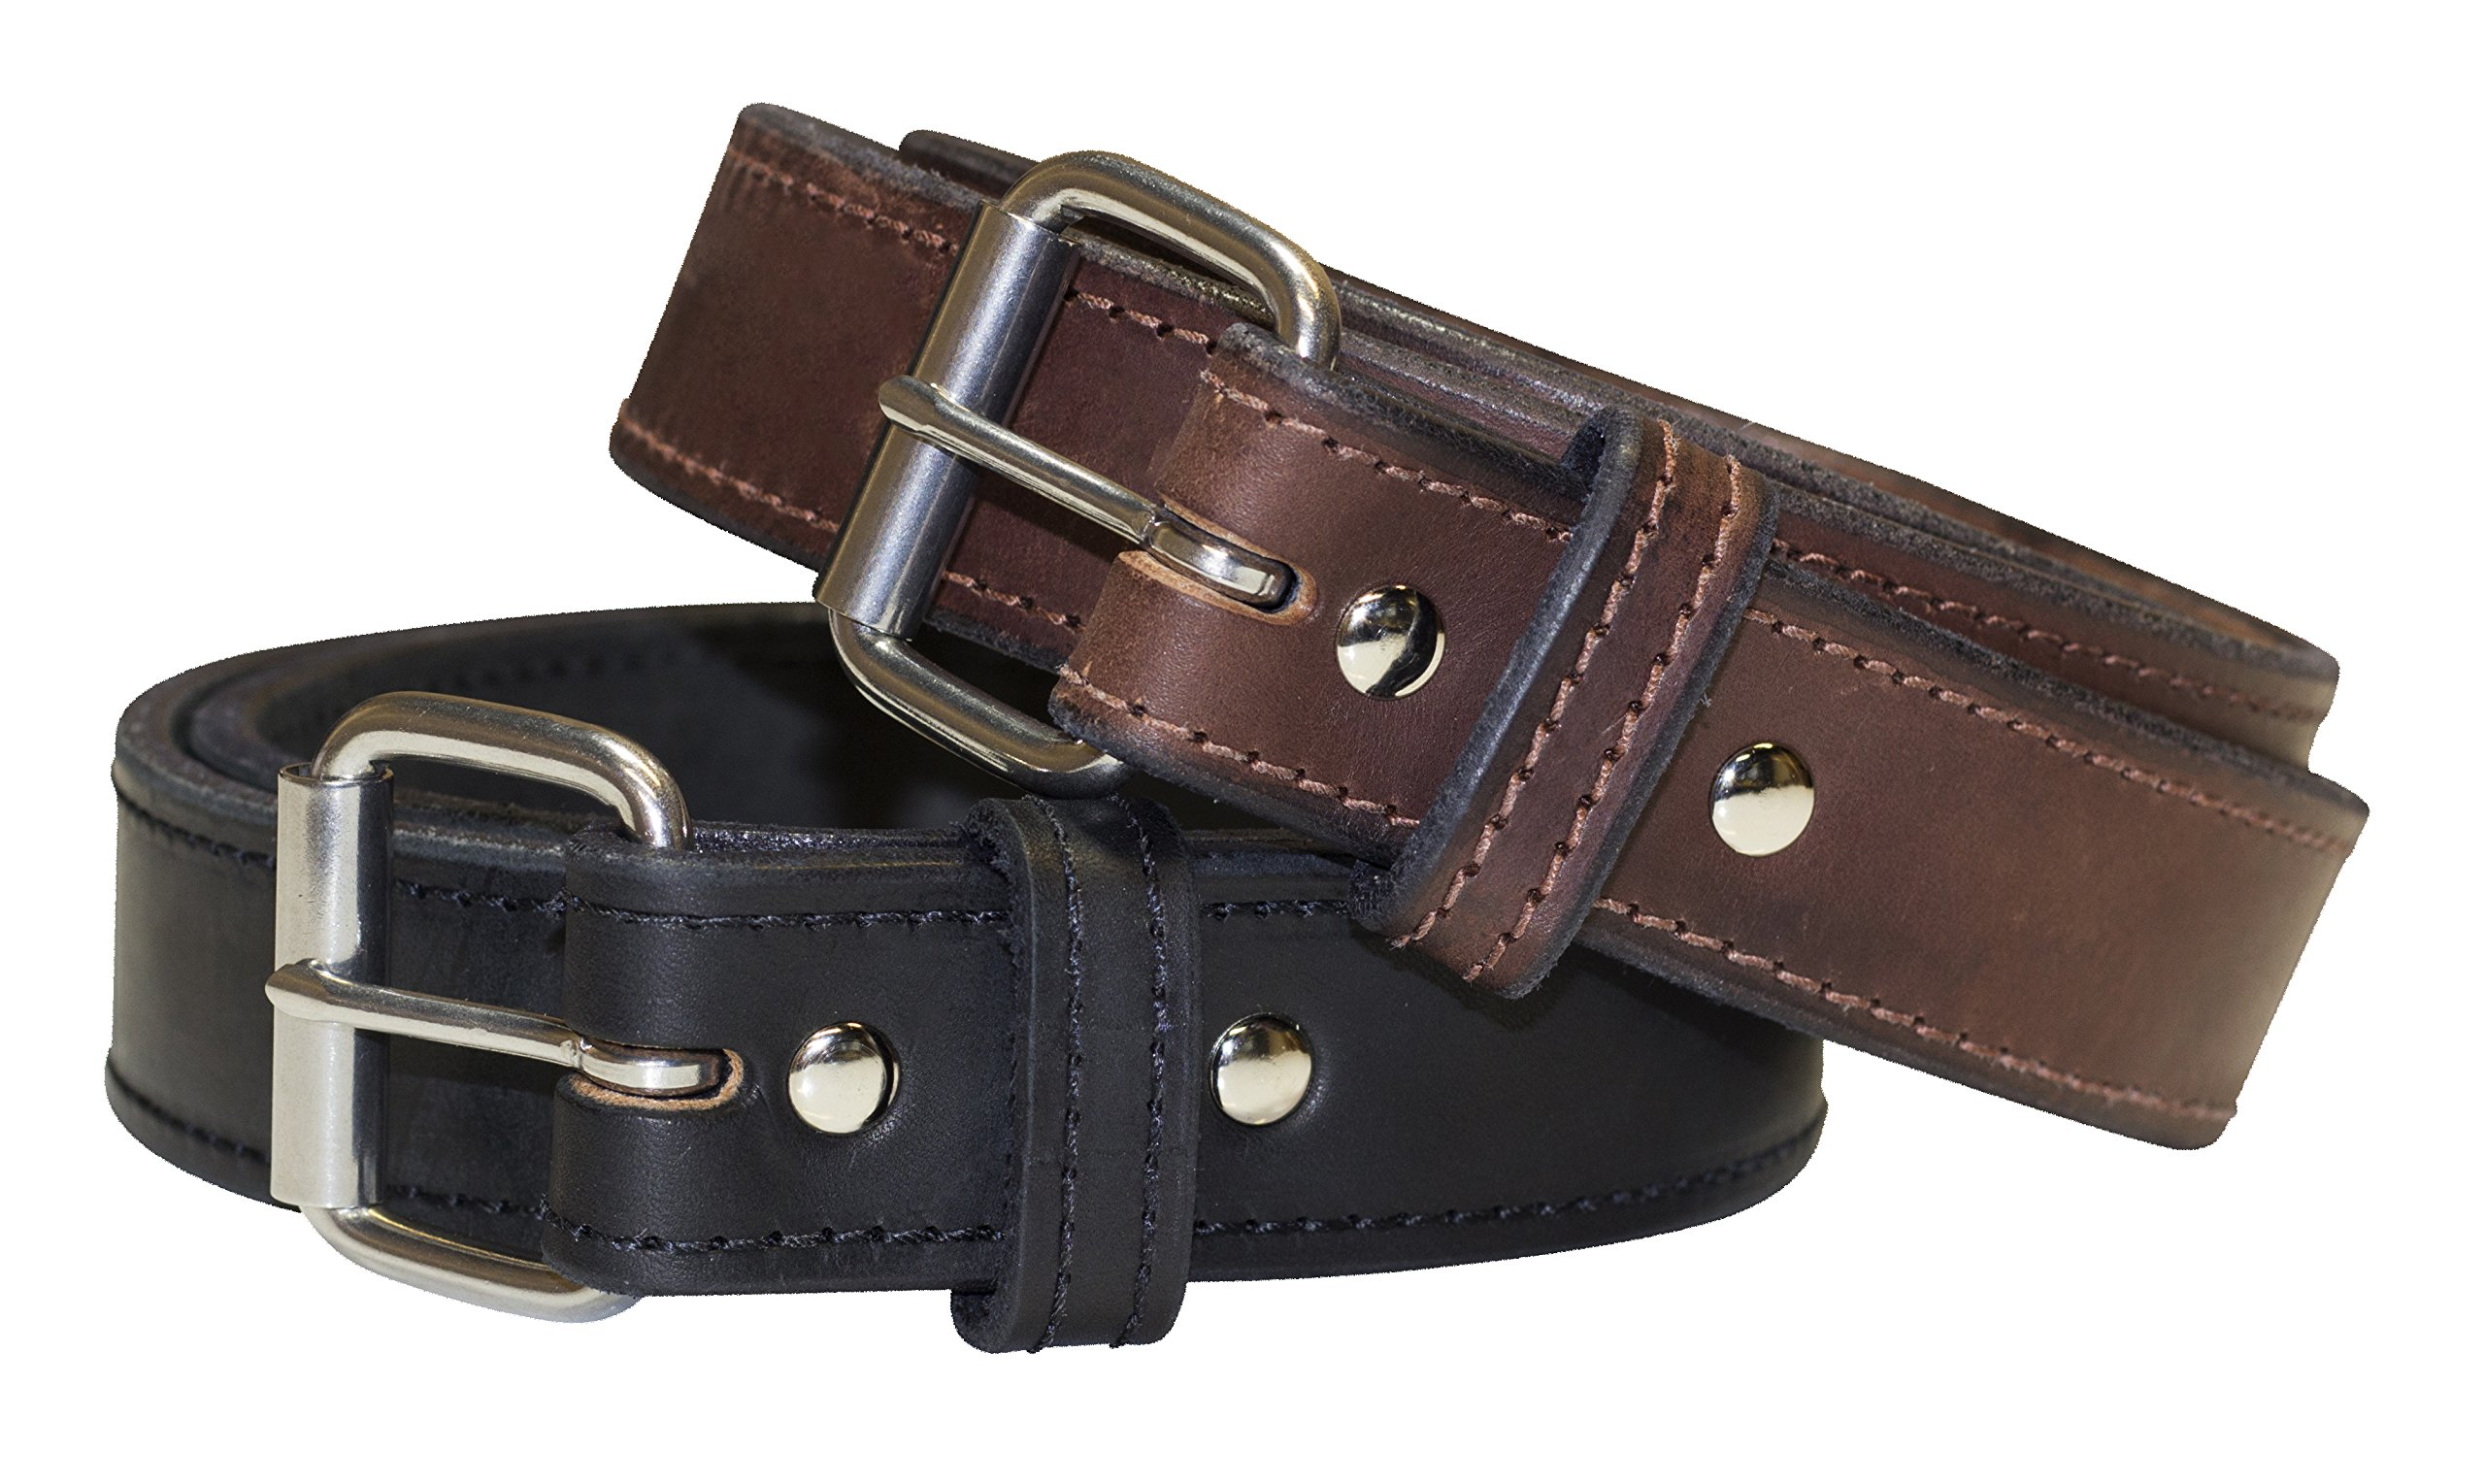 Relentless Tactical The Ultimate Concealed Carry CCW Leather Gun Belt - New and Improved - 14 Ounce 1 1/2 inch Premium Full Grain Leather Belt - Handmade in The USA! Black Size 50 by Relentless Tactical (Image #9)